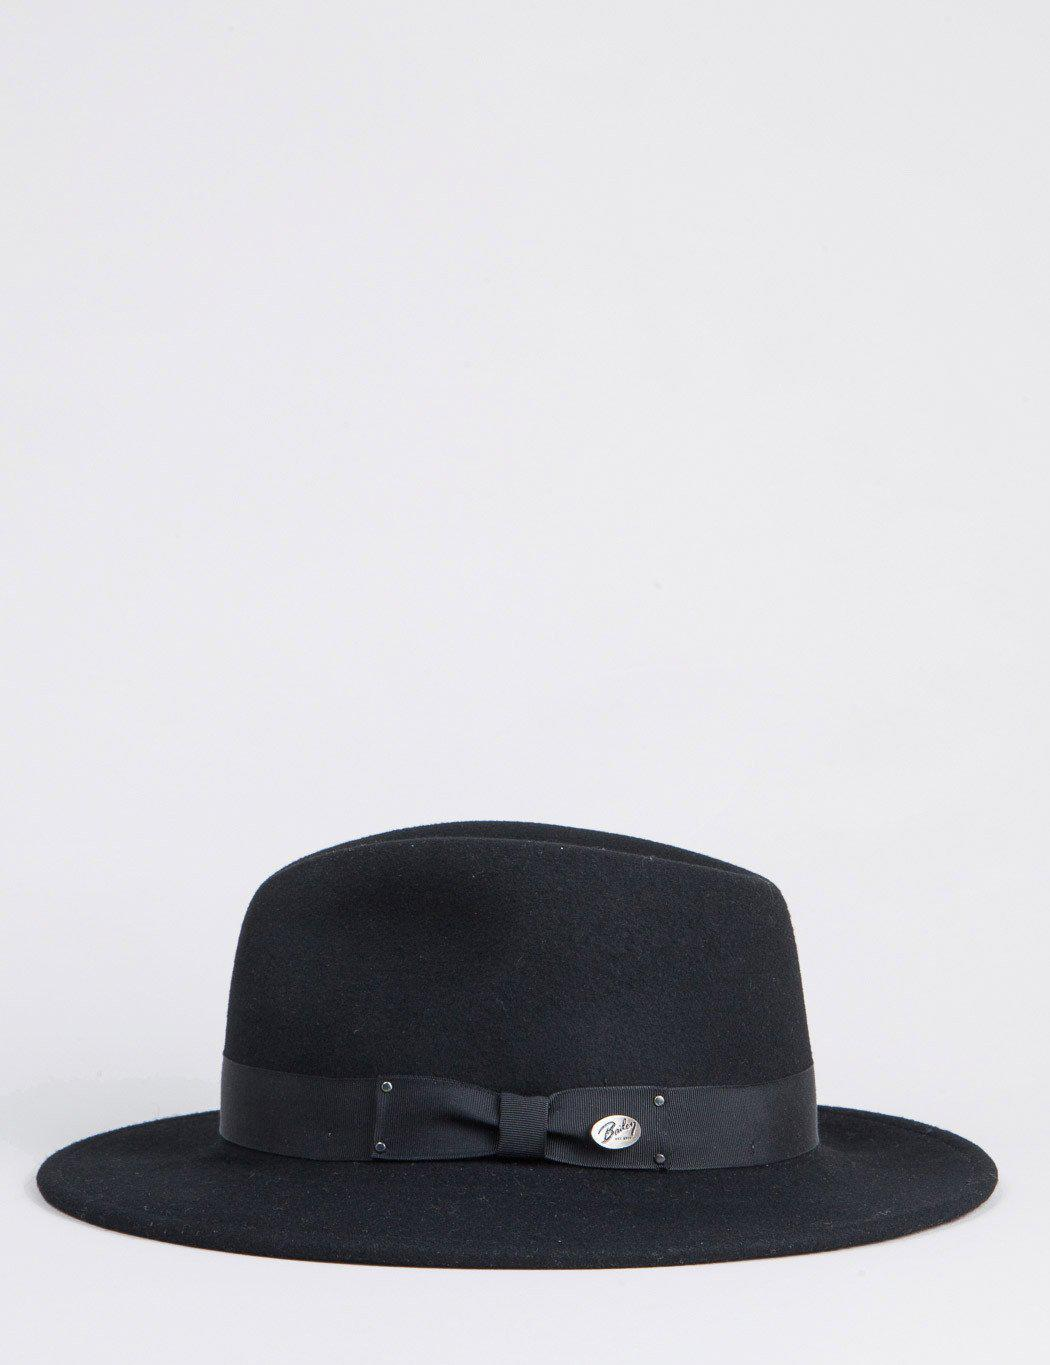 e6f2d8698d3 Bailey of Hollywood Bailey Curtis Widebrim Fedora Hat in Black for Men -  Lyst